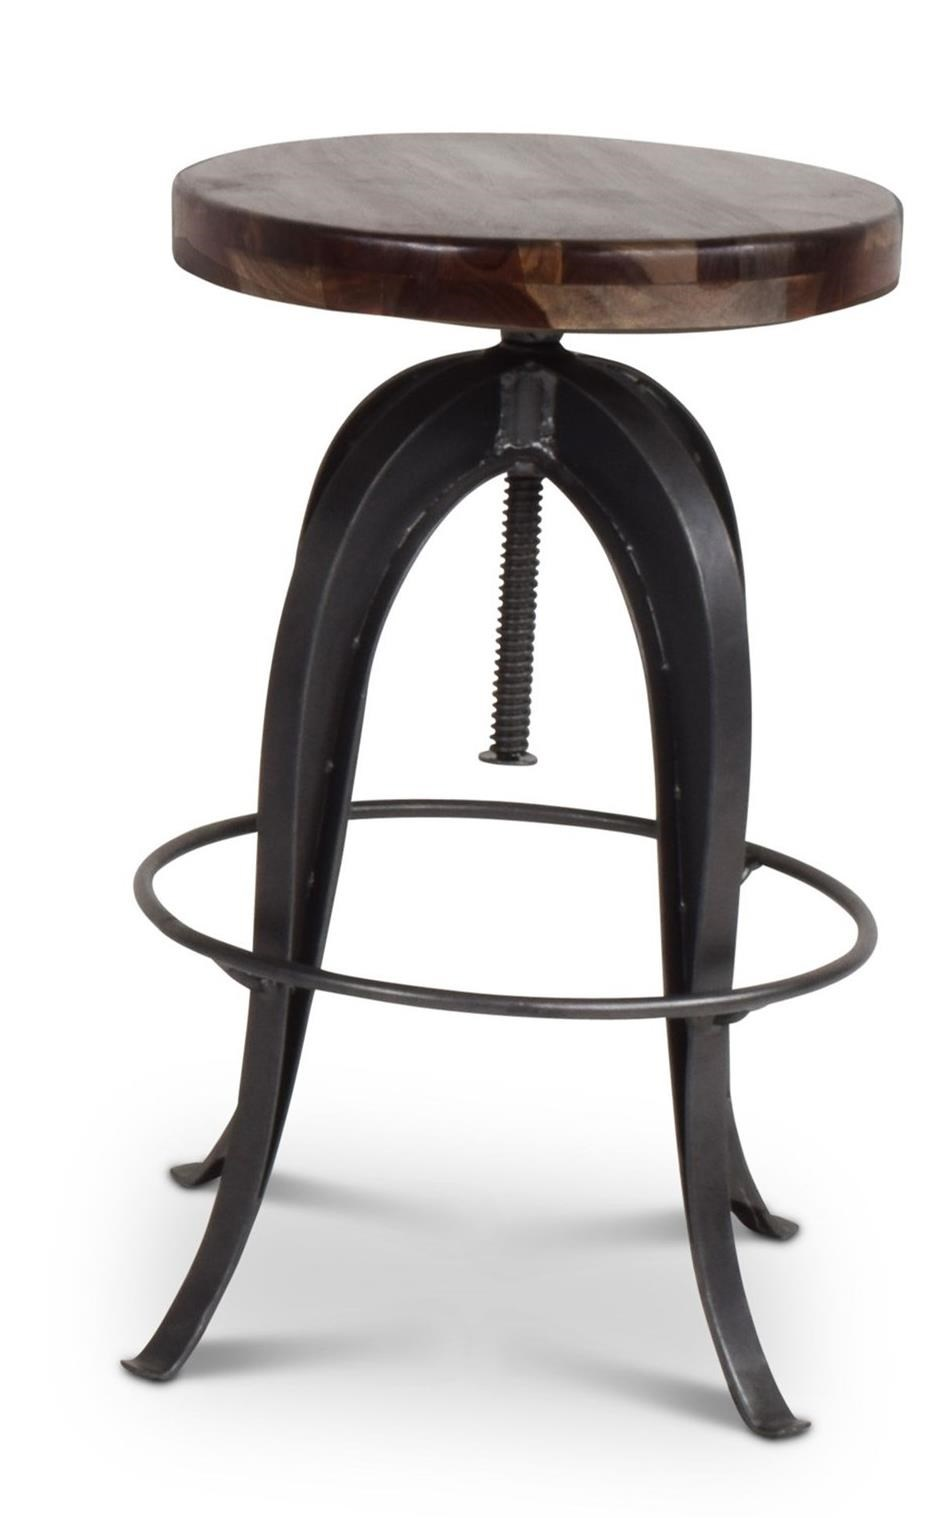 Sparrow Adjustable Round Stool by Steve Silver at Northeast Factory Direct